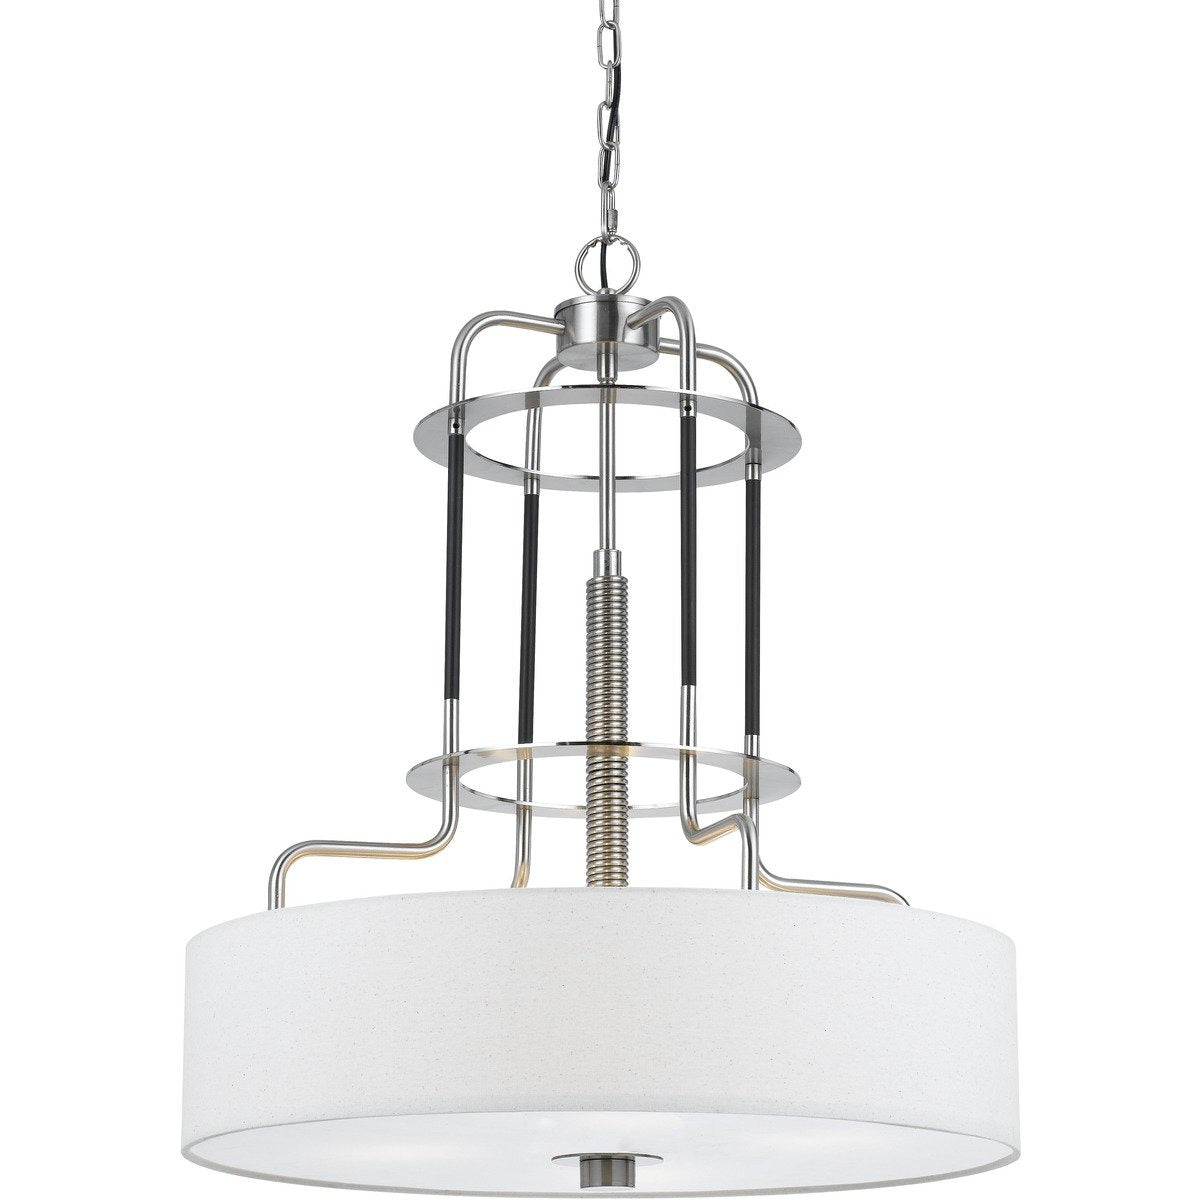 Chandeliers & Pendants - 60 X 4 Watt Metal Frame Chandelier With Fabric Shade, White And Silver